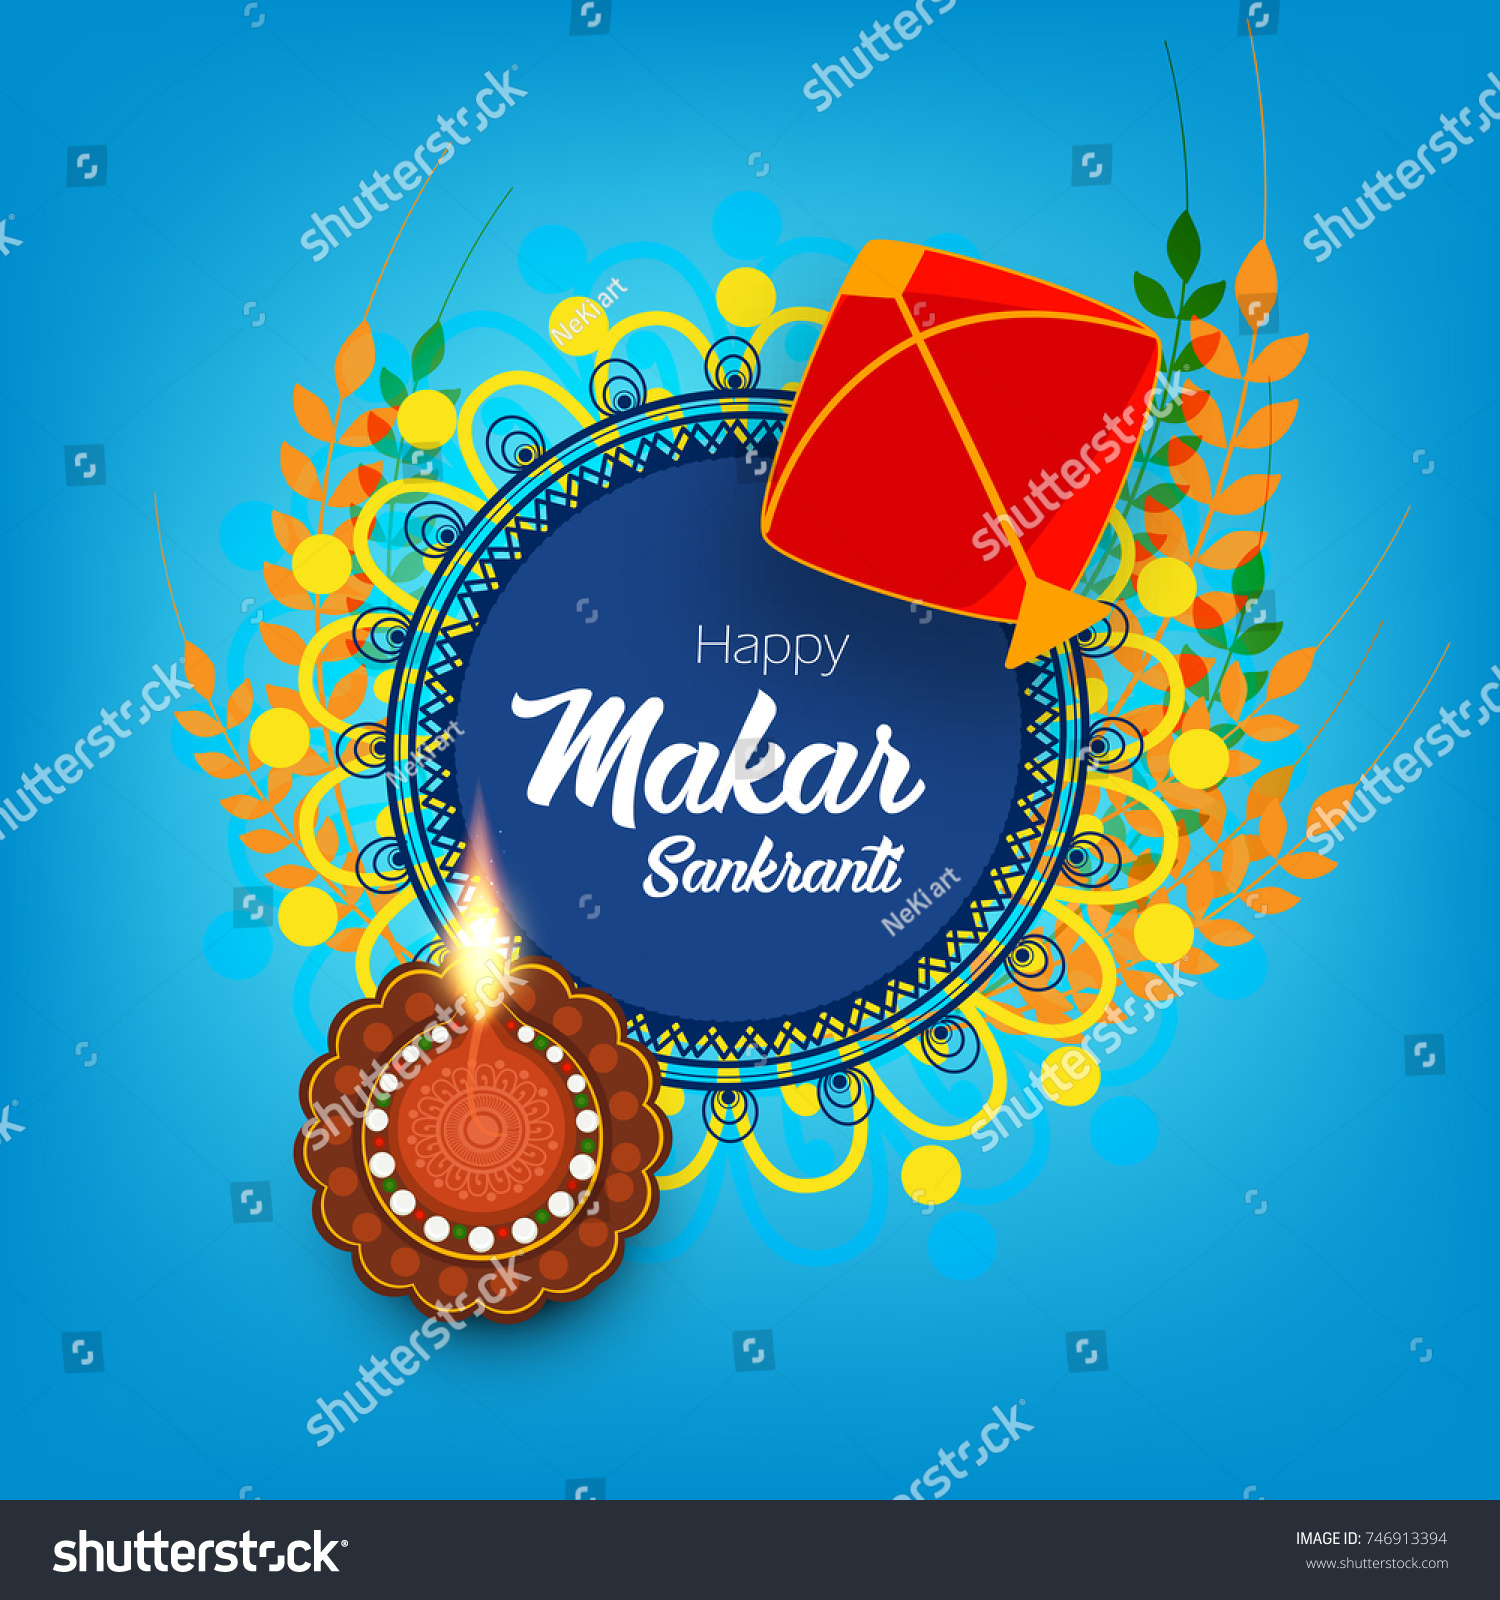 Indian Kite Flying Festival Makar Sankranti Stock Vector Royalty